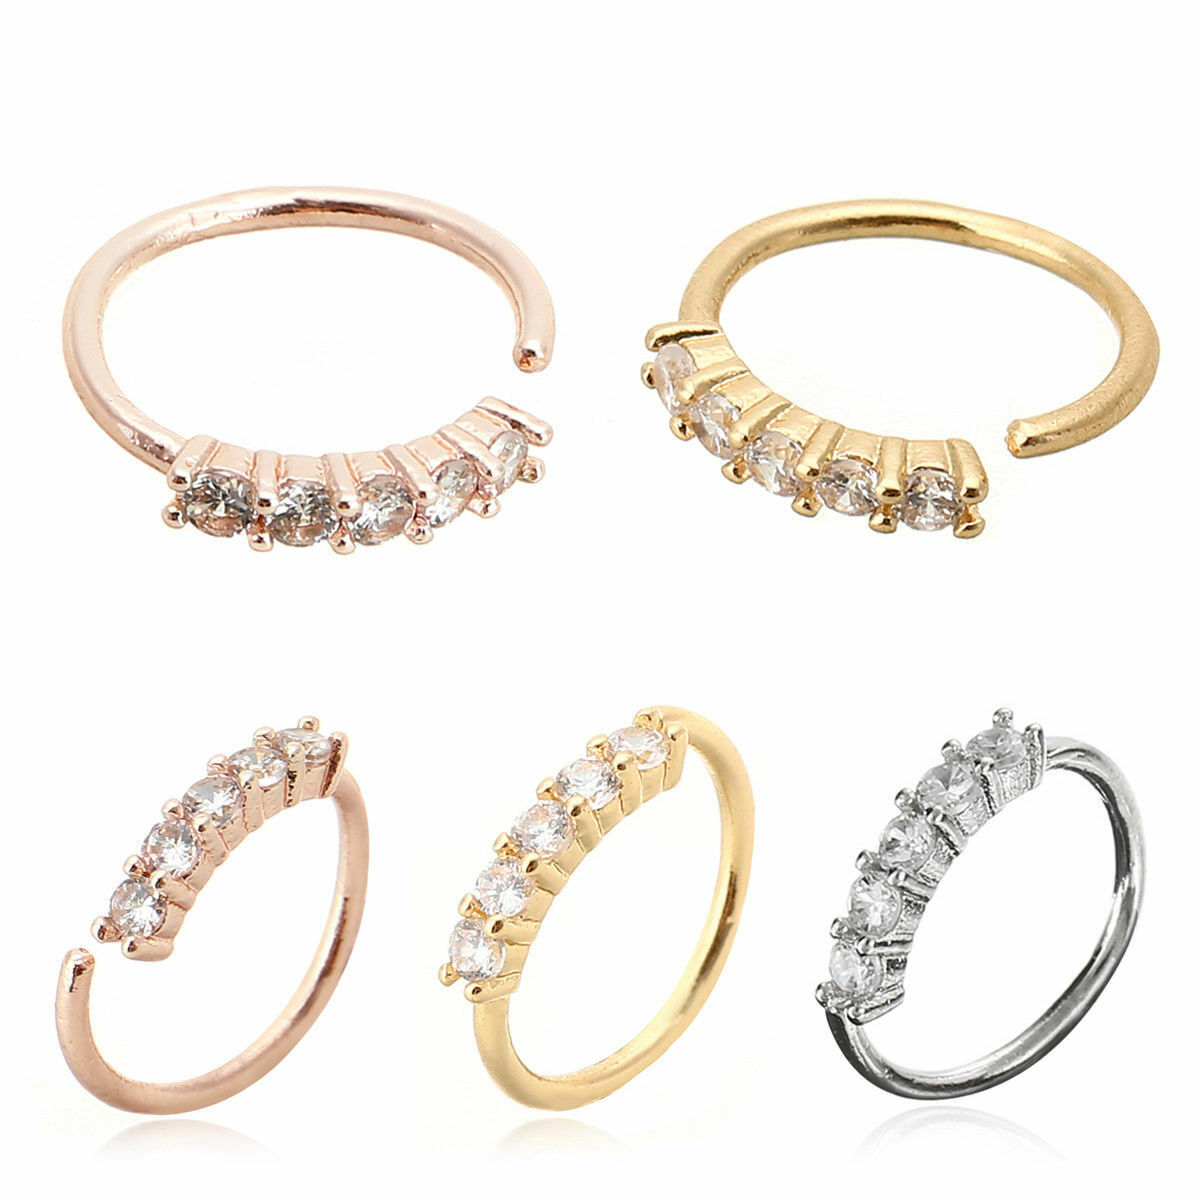 Nose Ring Ear Hoop Tragus Helix Cartilage Earring Crystal Stainless Steel Body Jewelry